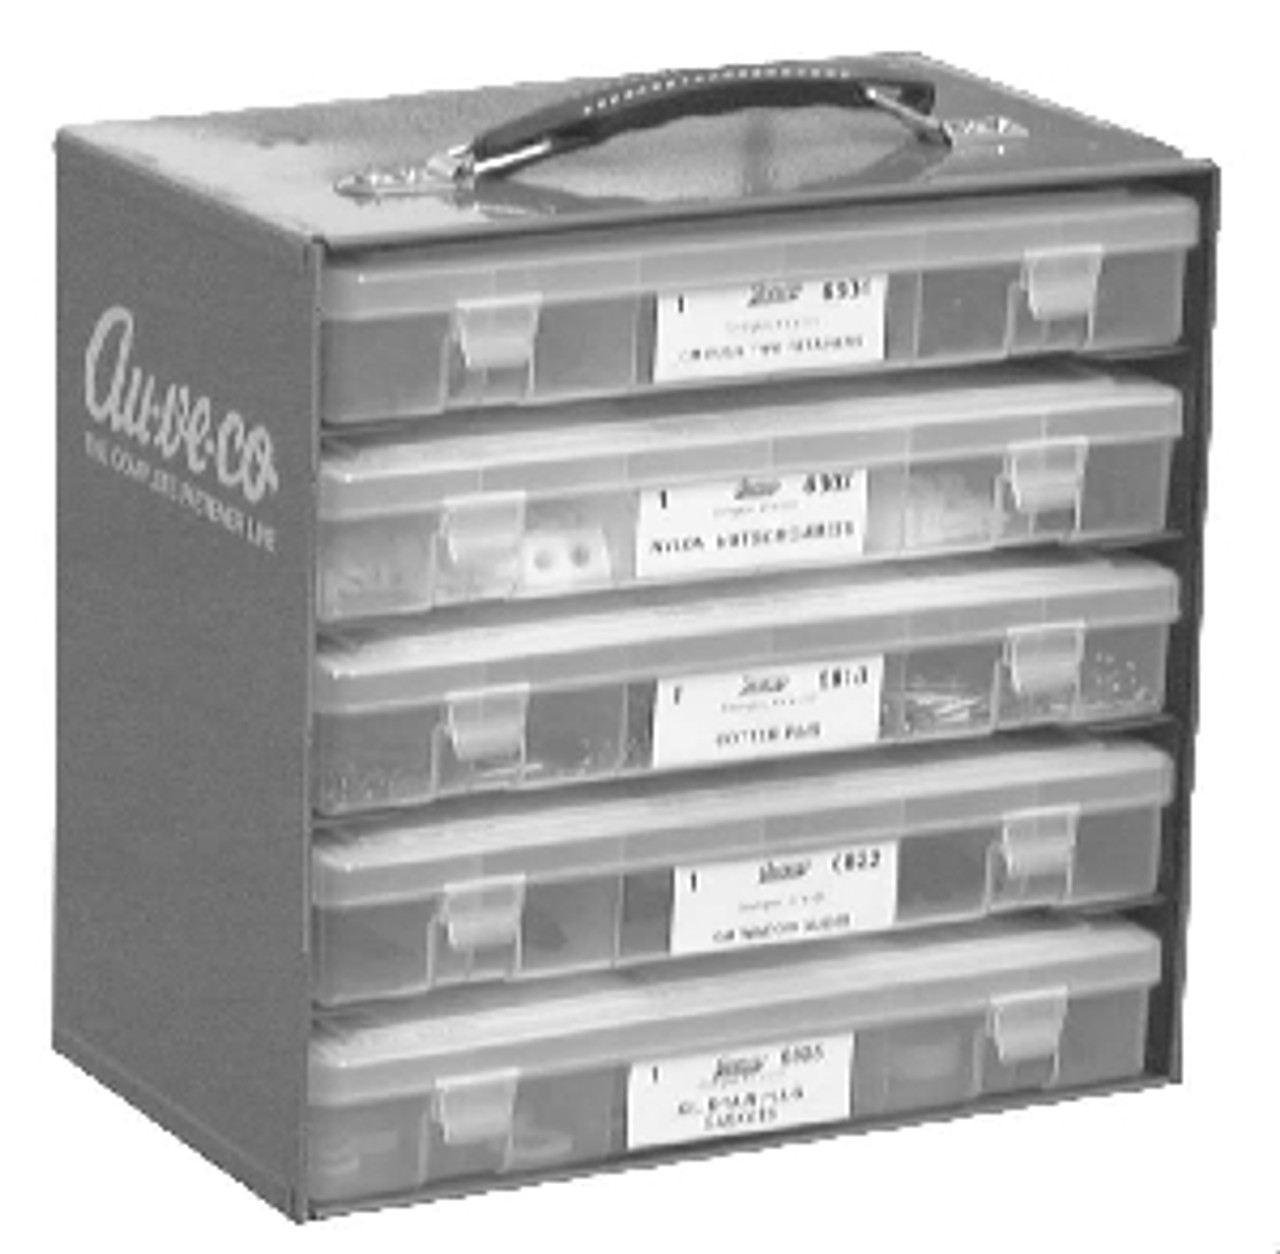 Will hold 5 Quick Select Kits 11-1/4 wide X 6-3/4 Deep x 10-3/4 Wide Grey enamel finish Includes Carry Handle and Wall Mount Slots